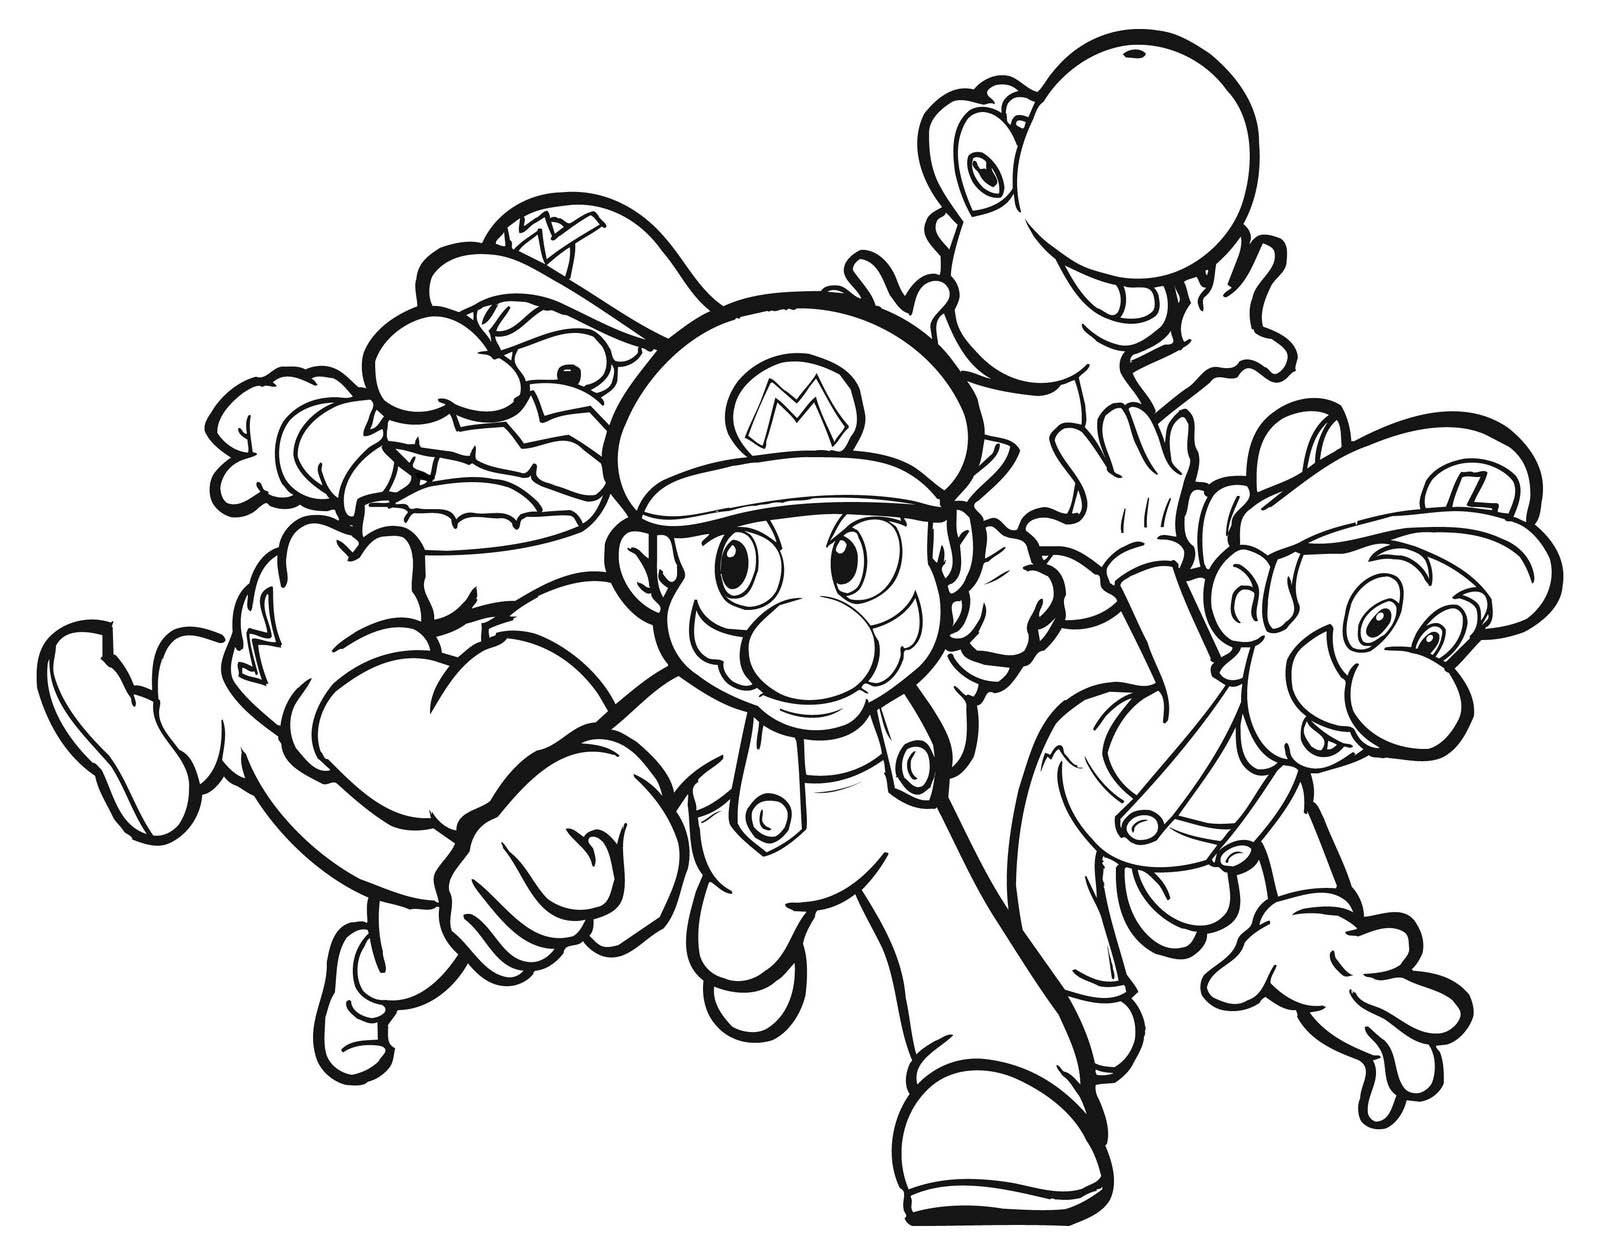 free printable mario coloring pages official mario coloring pages gonintendo free printable mario coloring pages